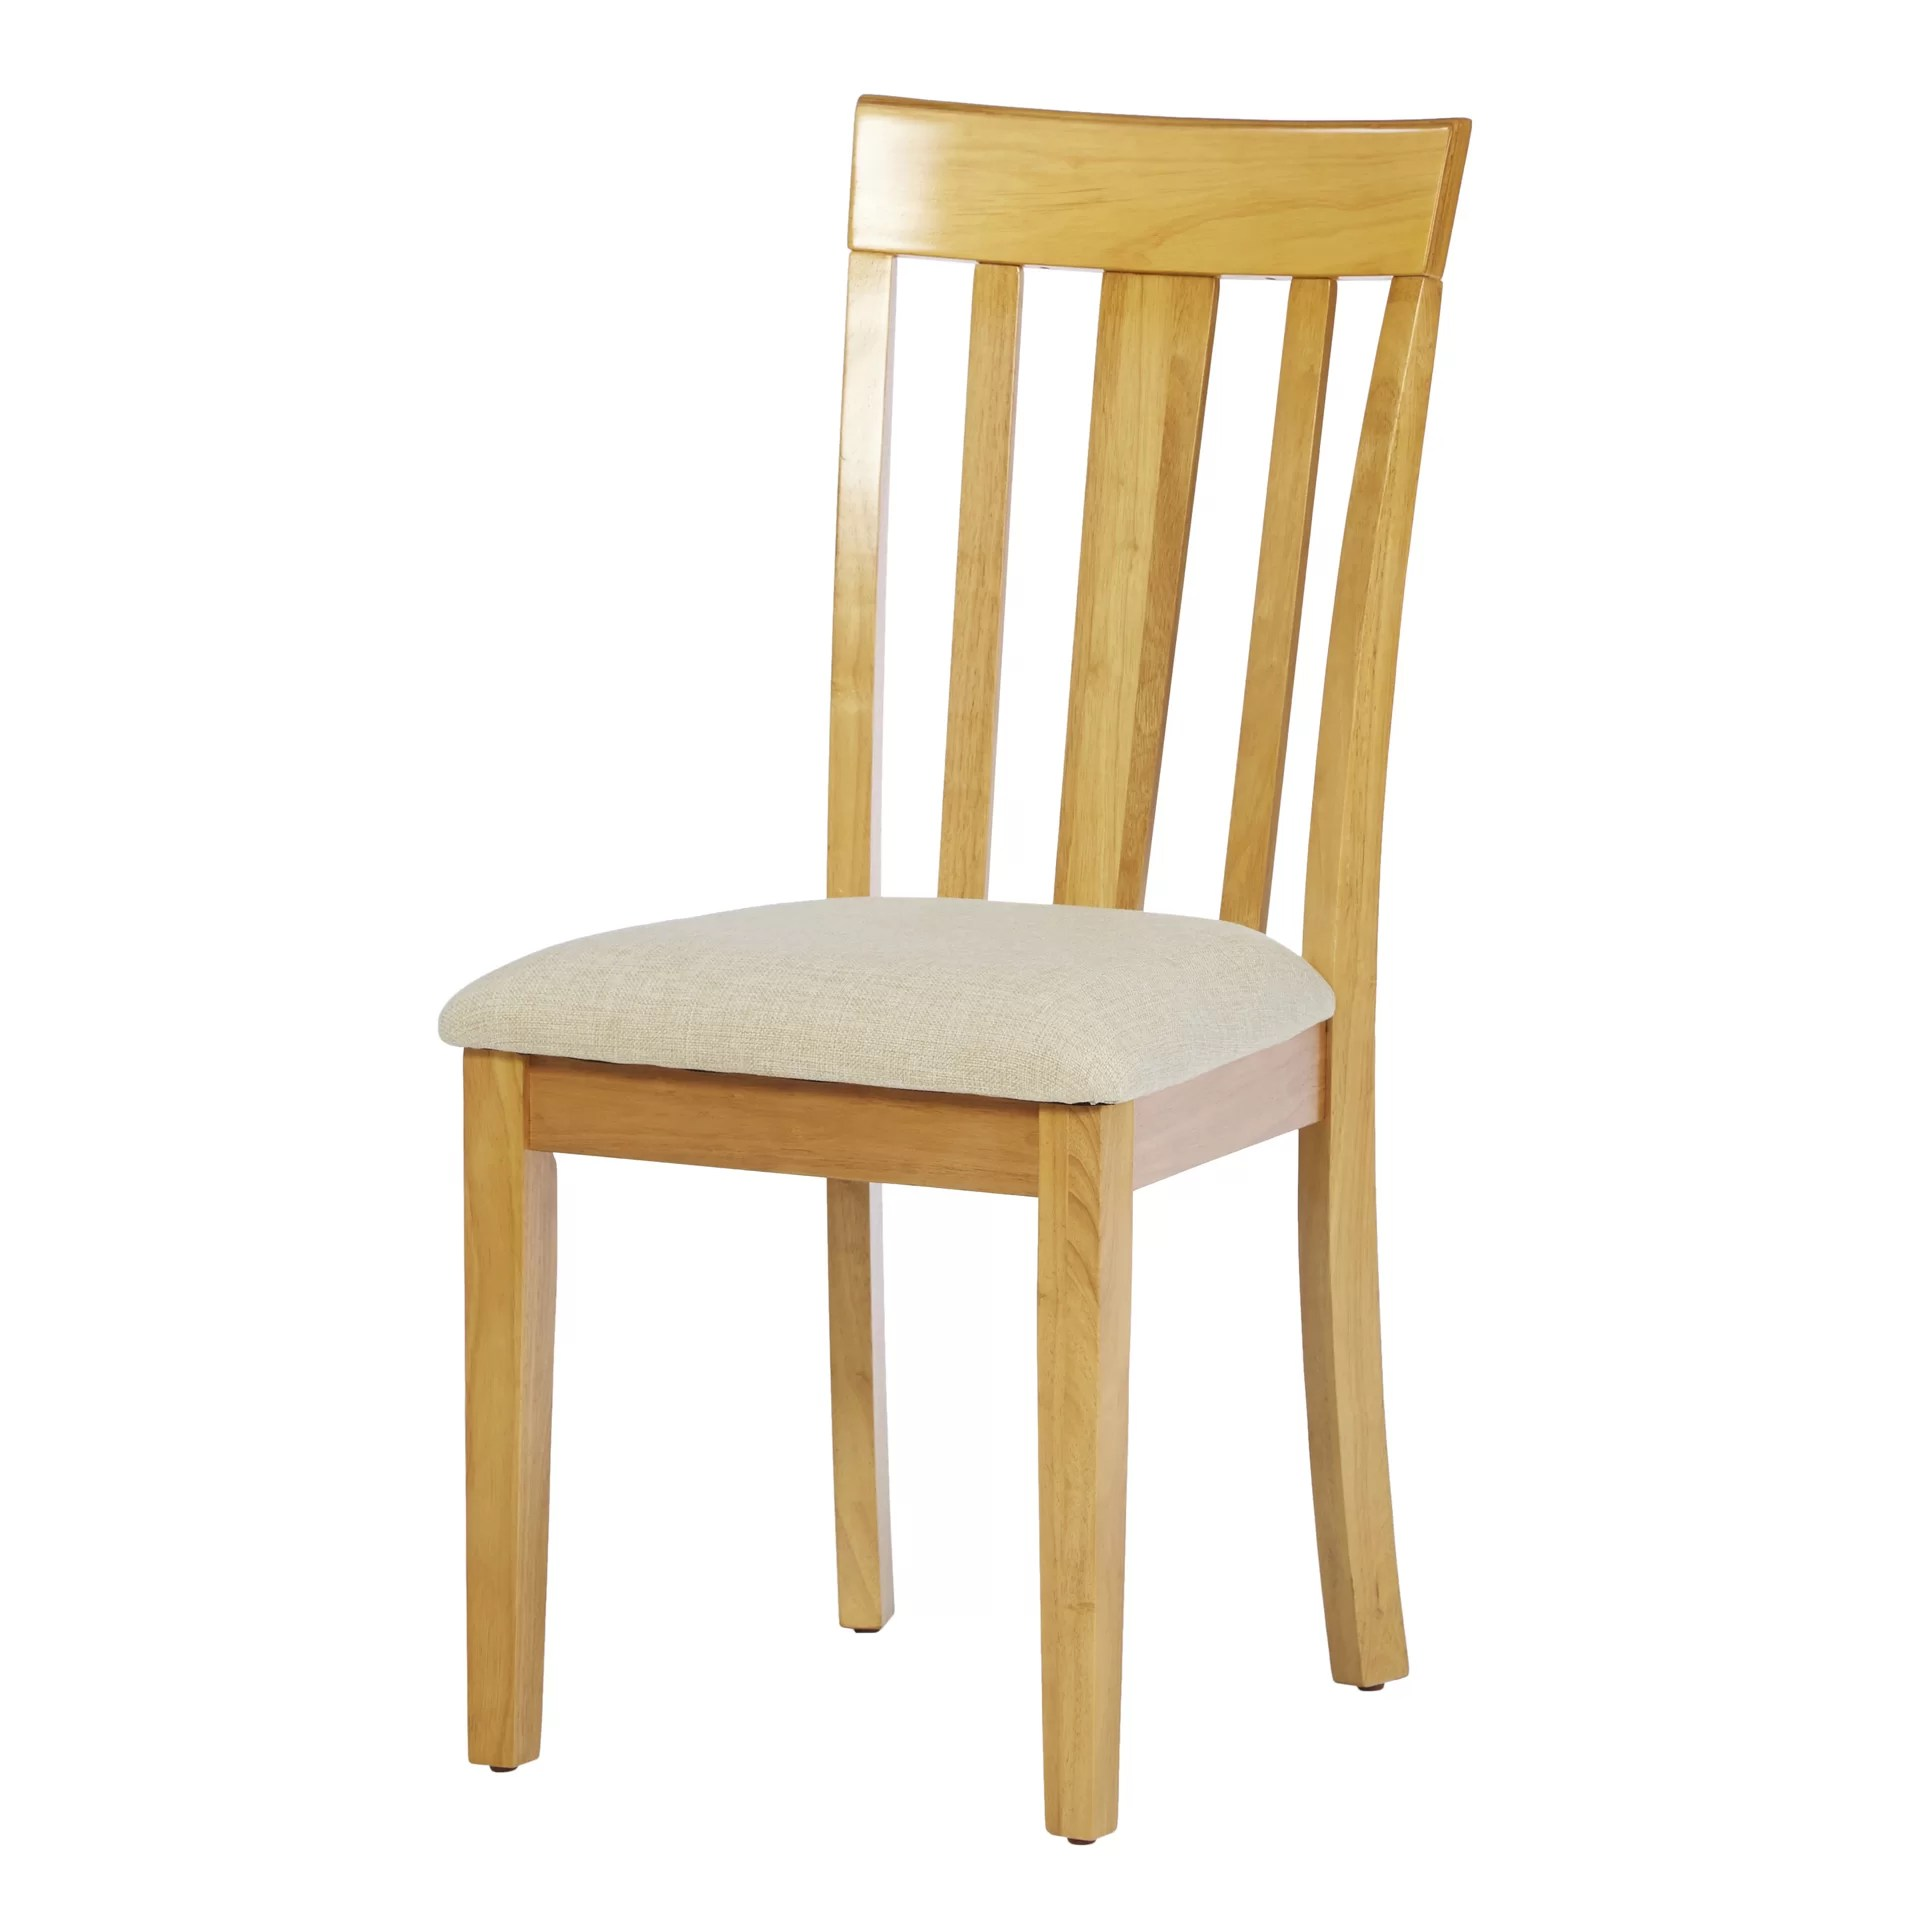 Wayfair Dining Chairs Andover Mills Bradlee Dining Chair Set And Reviews Wayfair